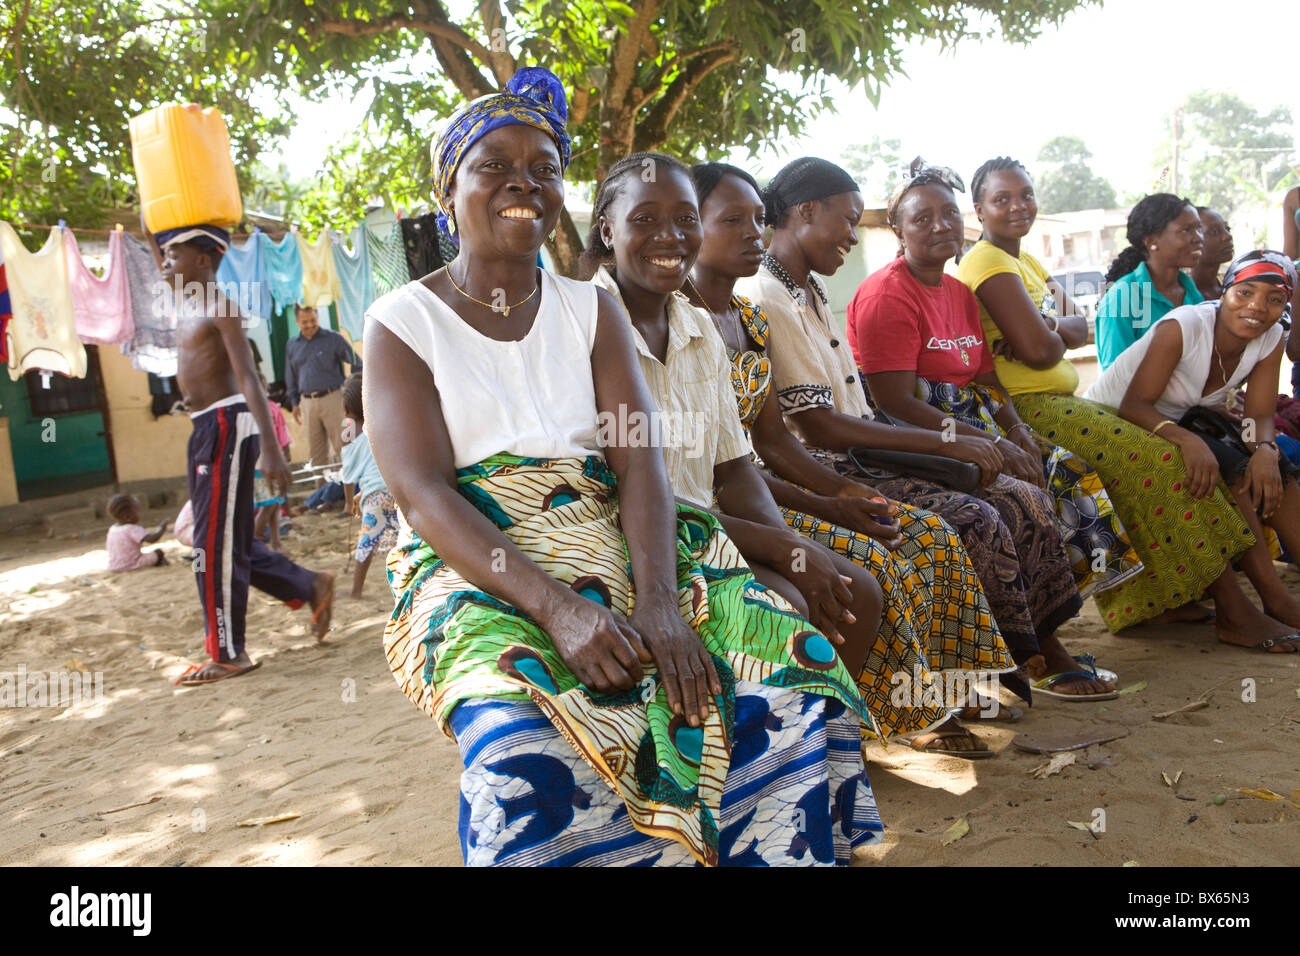 Women attend a community group meeting in Monrovia, Liberia, West Africa. Stock Photo